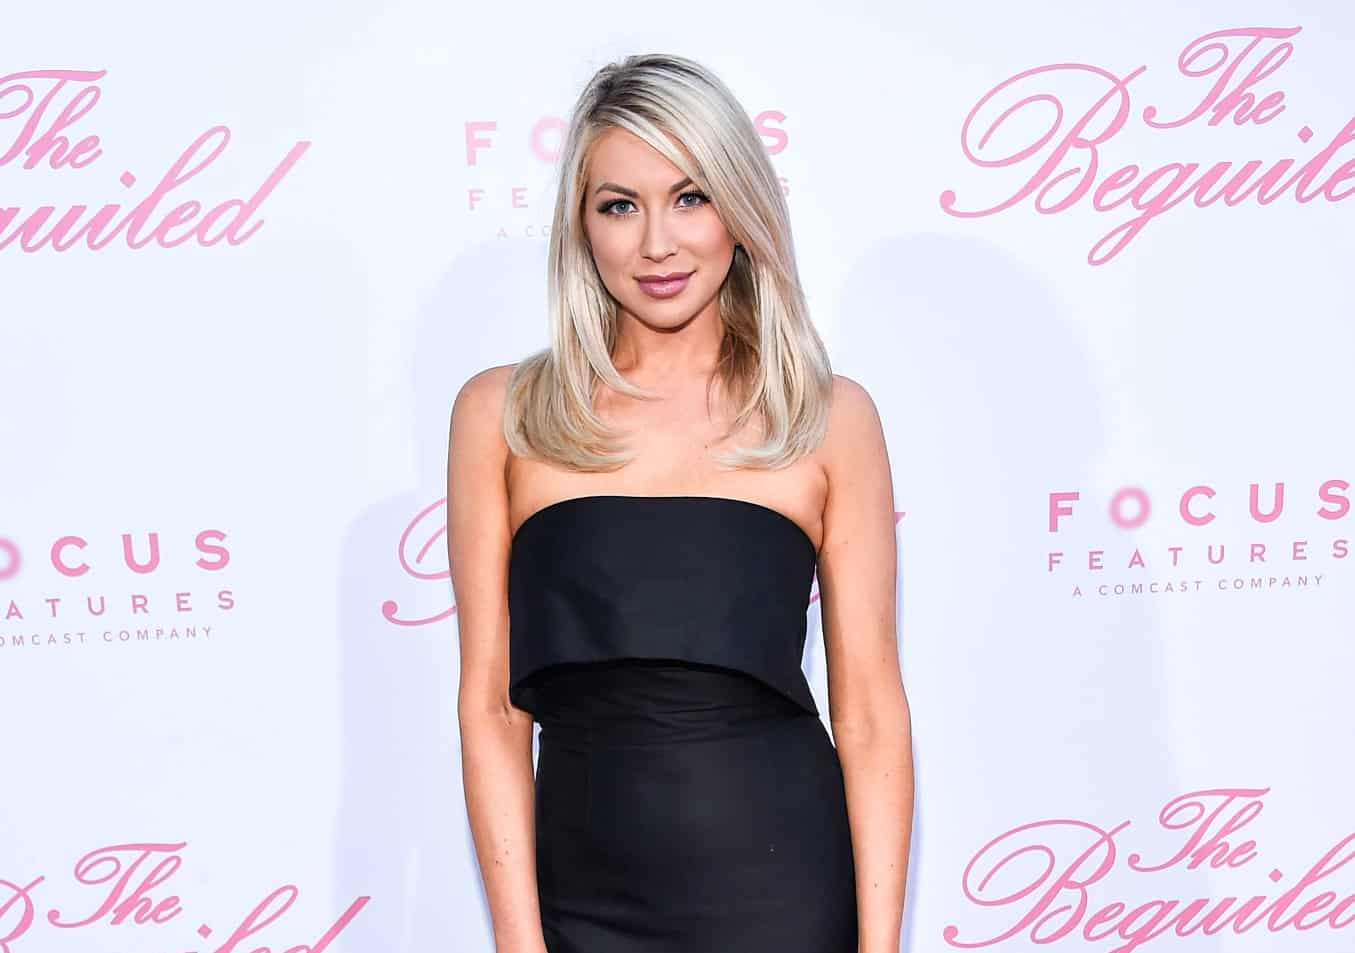 Stassi Schroeder Reveals Her New Wedding Date! Plus the Vanderpump Rules Star Defends Not Wanting to Be Friends With Kristen and Explains Why She and Her Co-Stars Need a Spinoff